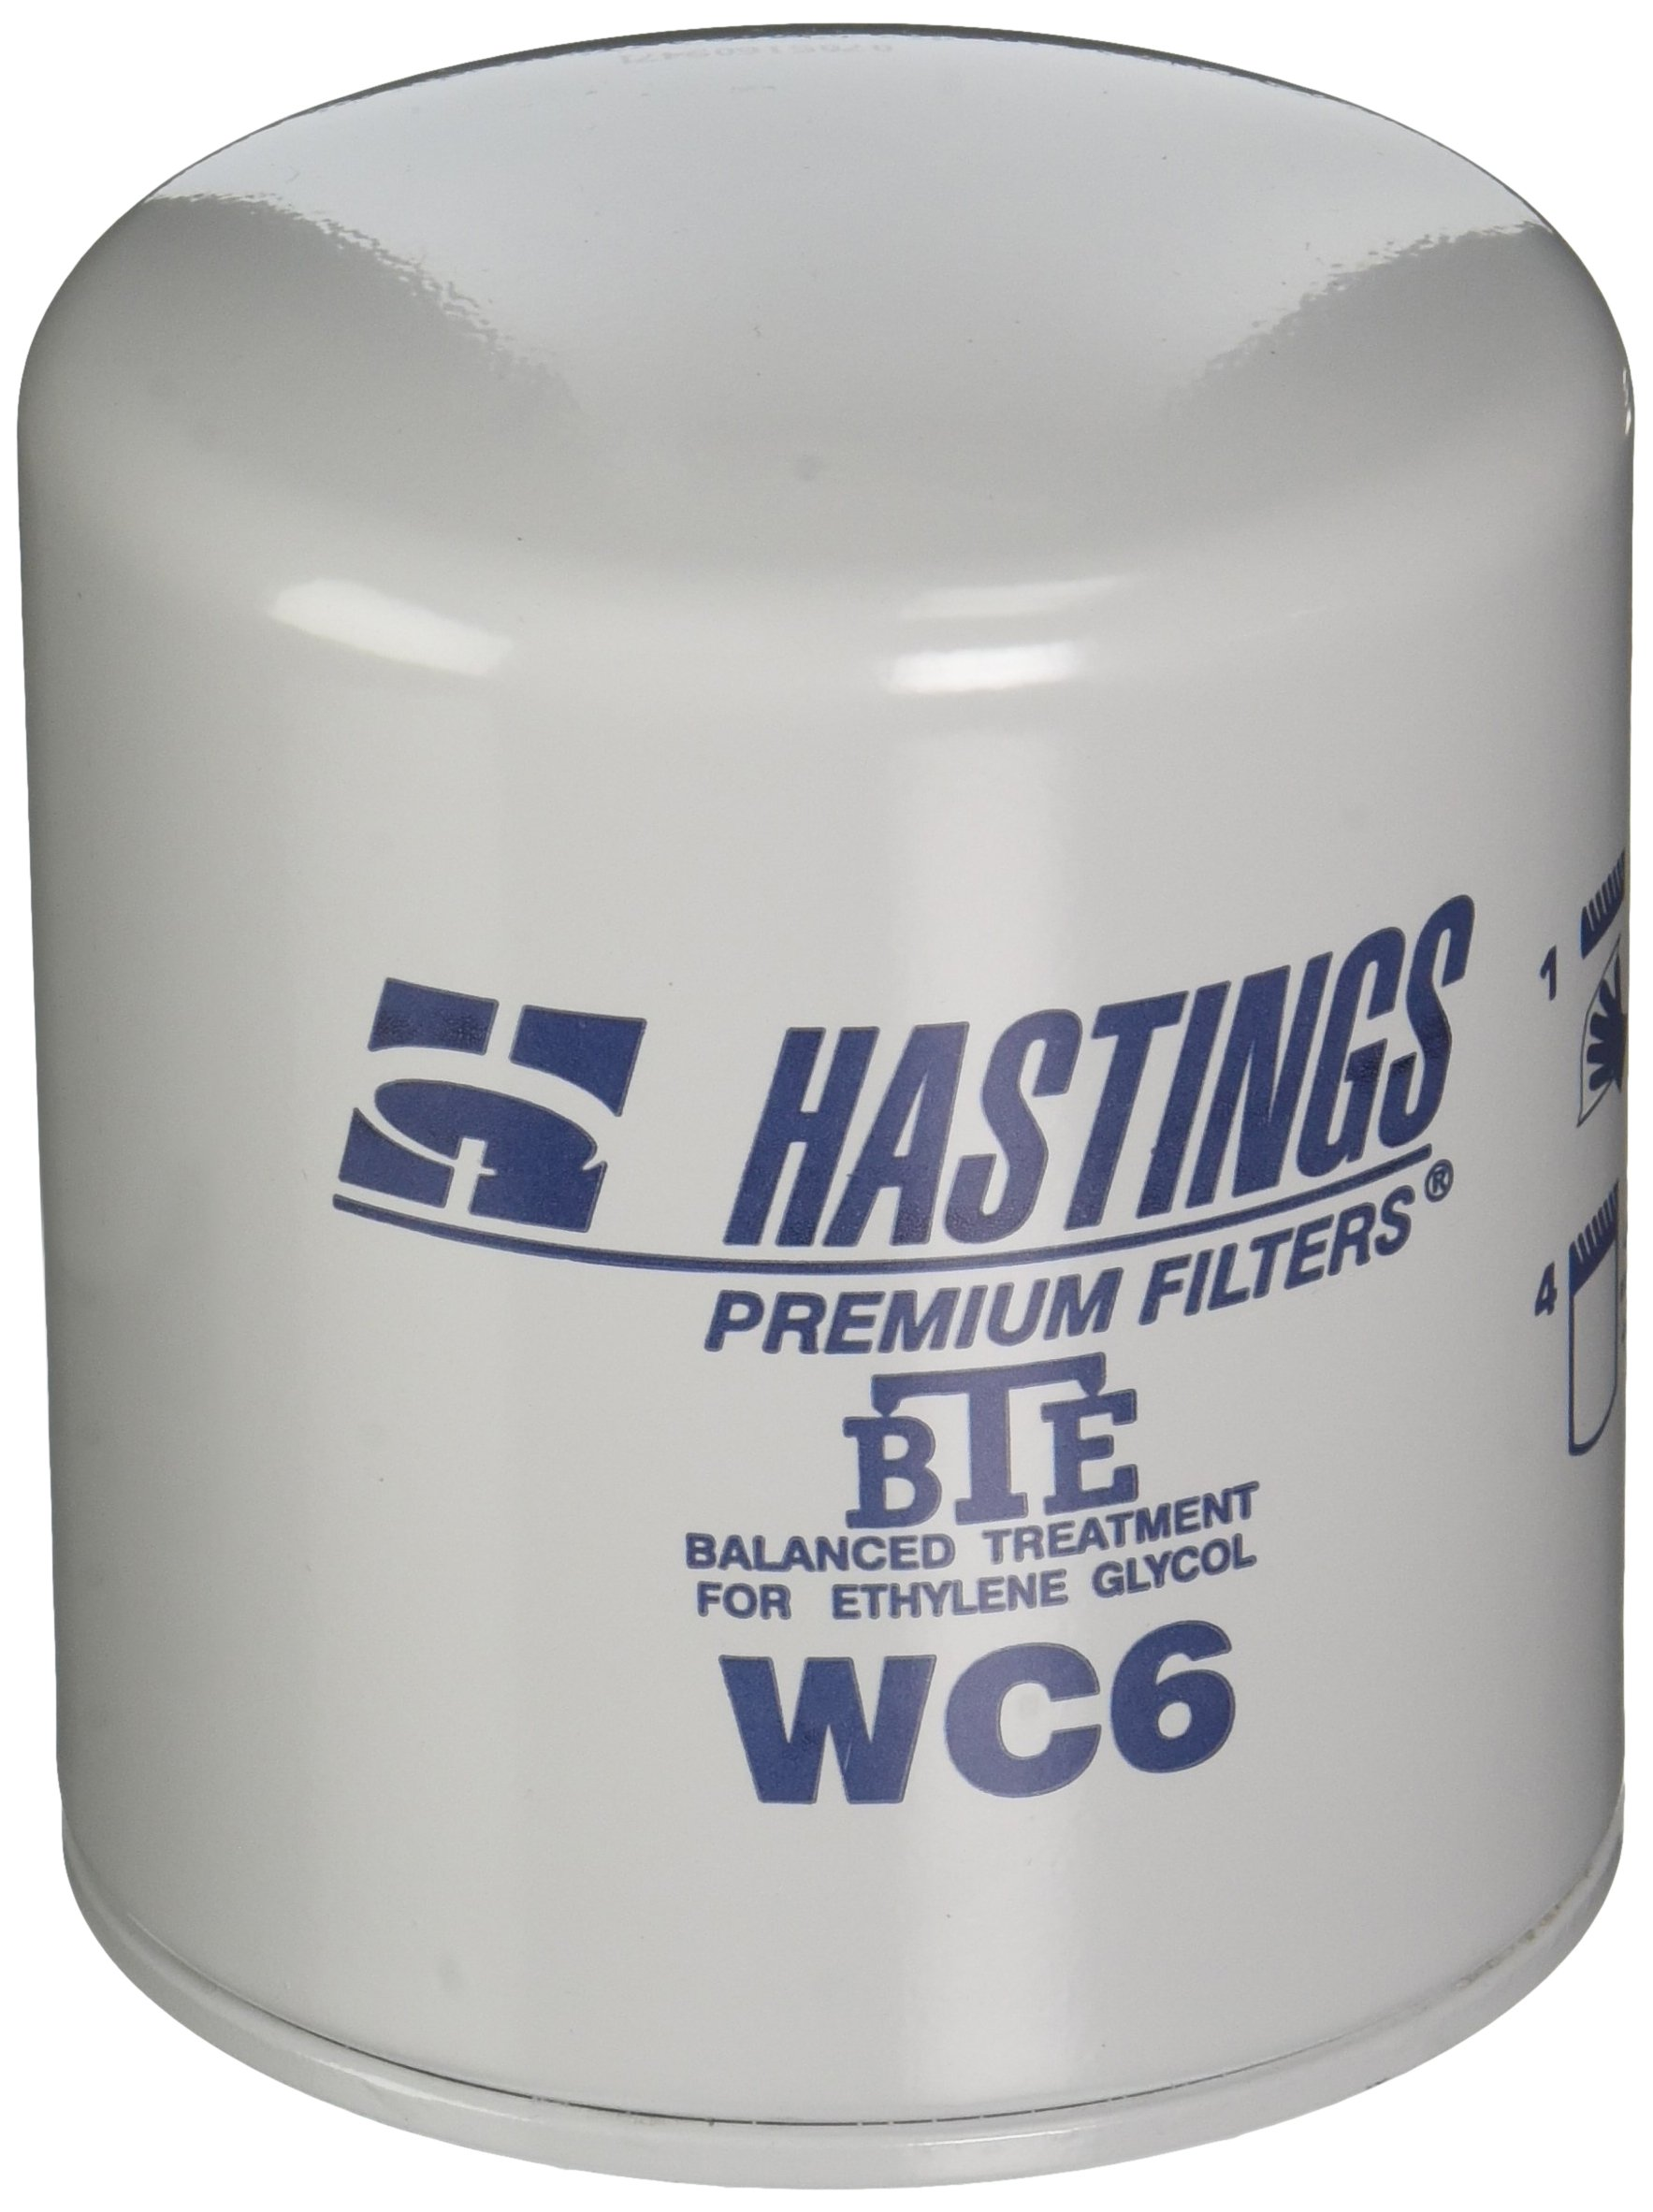 Hastings WC6 Coolant Spin-On Filter Filter with BTE Formula